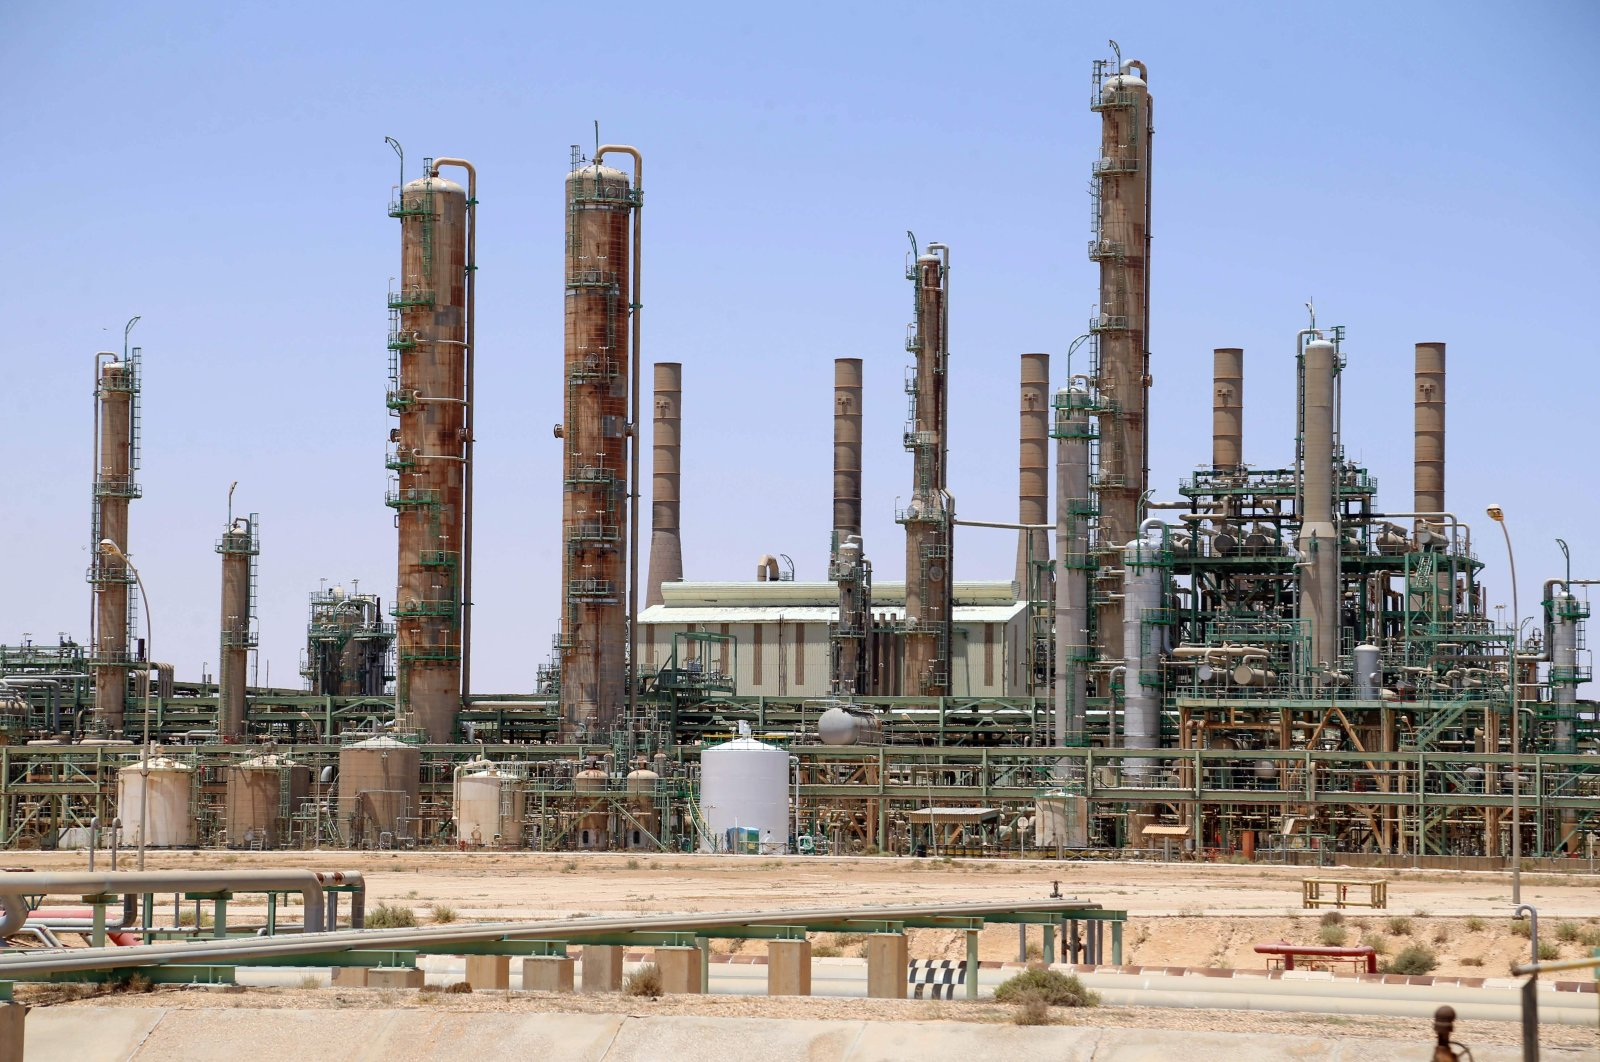 This file photo taken on June 3, 2020 shows an oil refinery in Libya's northern town of Ras Lanuf. (AFP Photo)